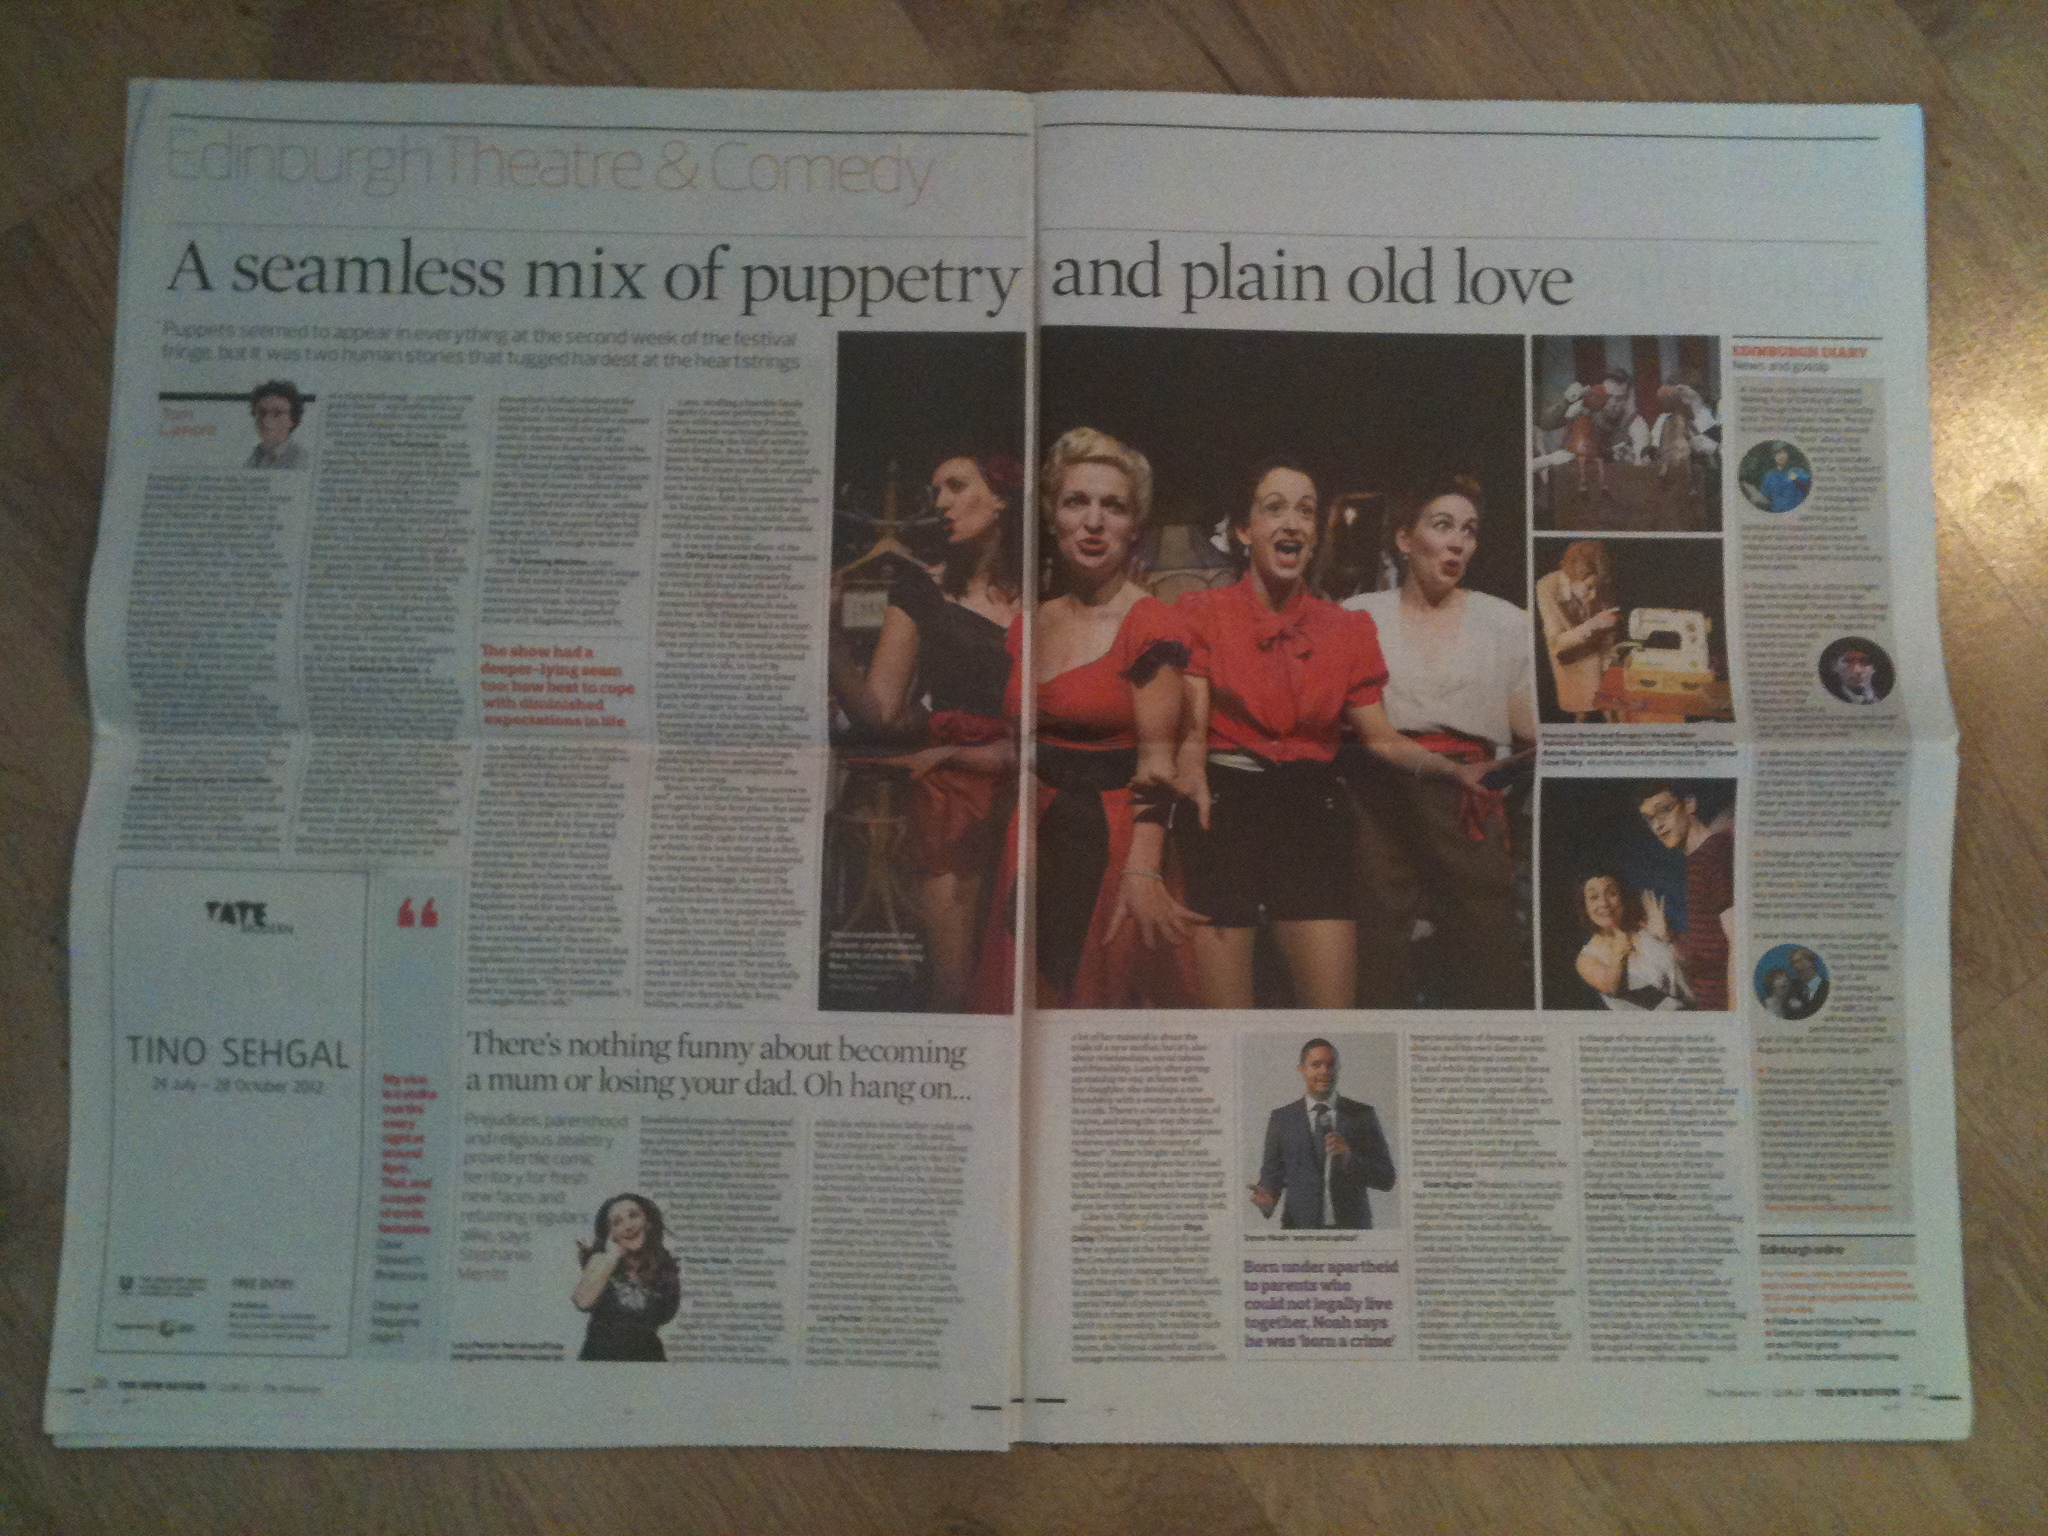 Across a double page spread in The Observer 2012